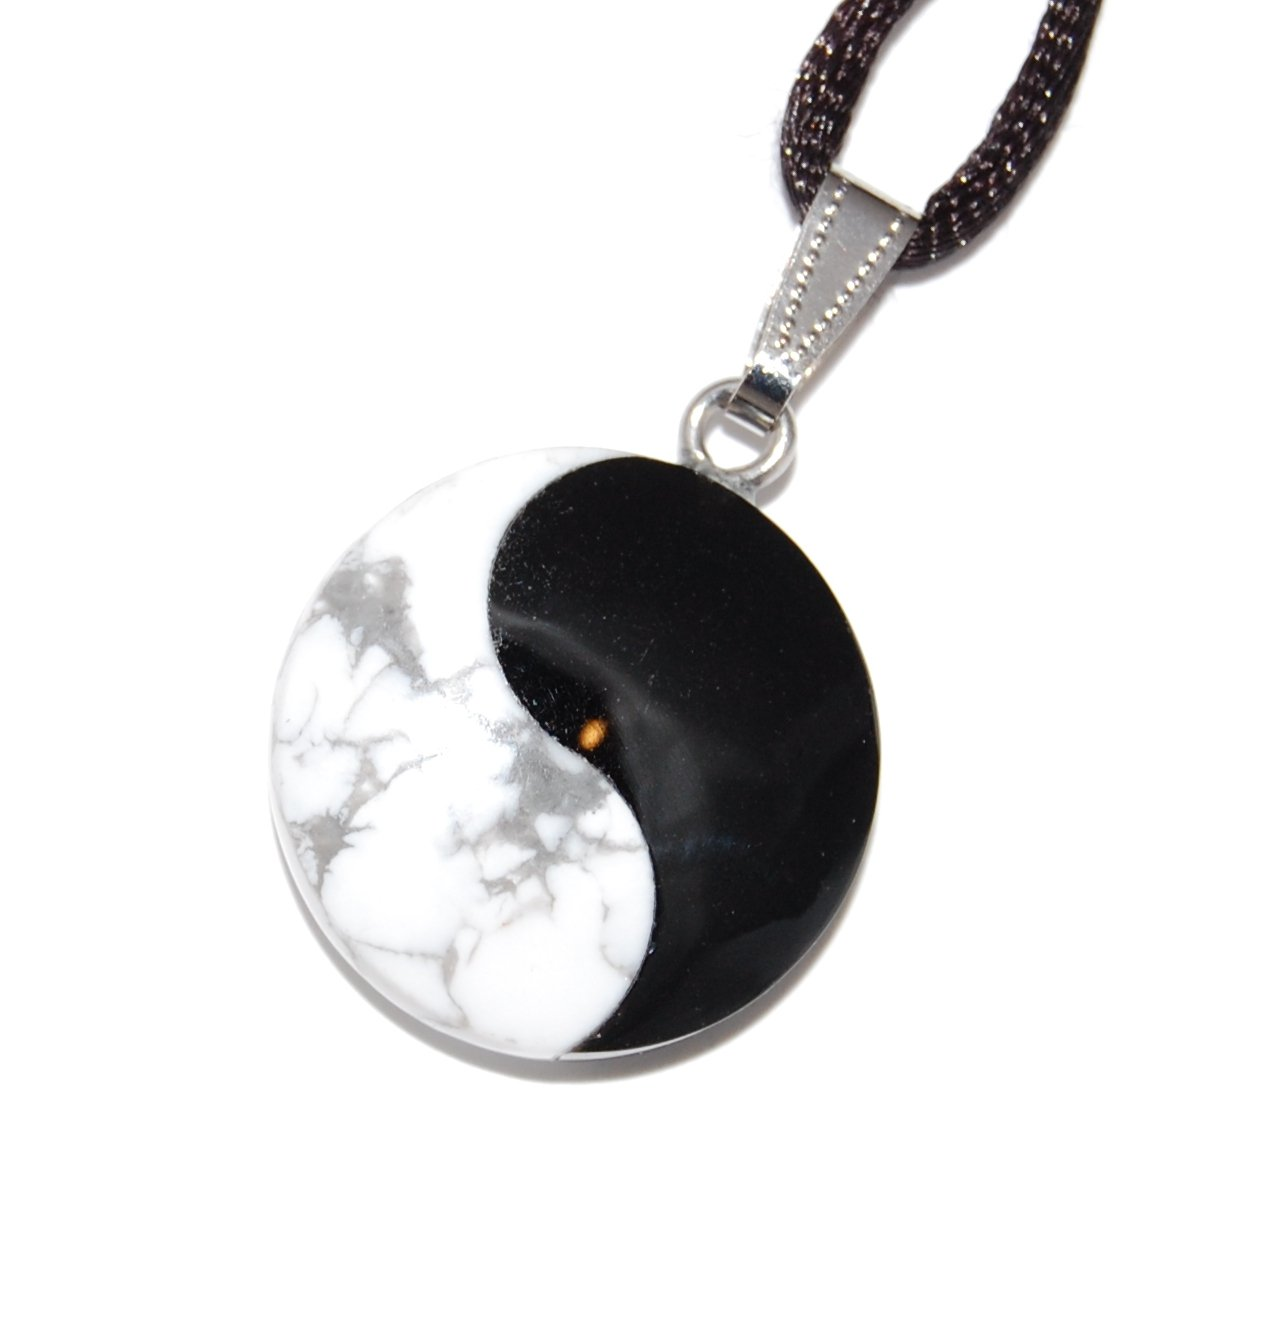 Steampunkers USA Power Pack Series - Yin Yang Martial Arts Round Pendant Howlite & Onyx 25mm Black White Gray - 20'' to 24'' Adjustable Black Poly Woven Washable Cord - Crystal Gemstone Carved Necklace by Steampunkers USA